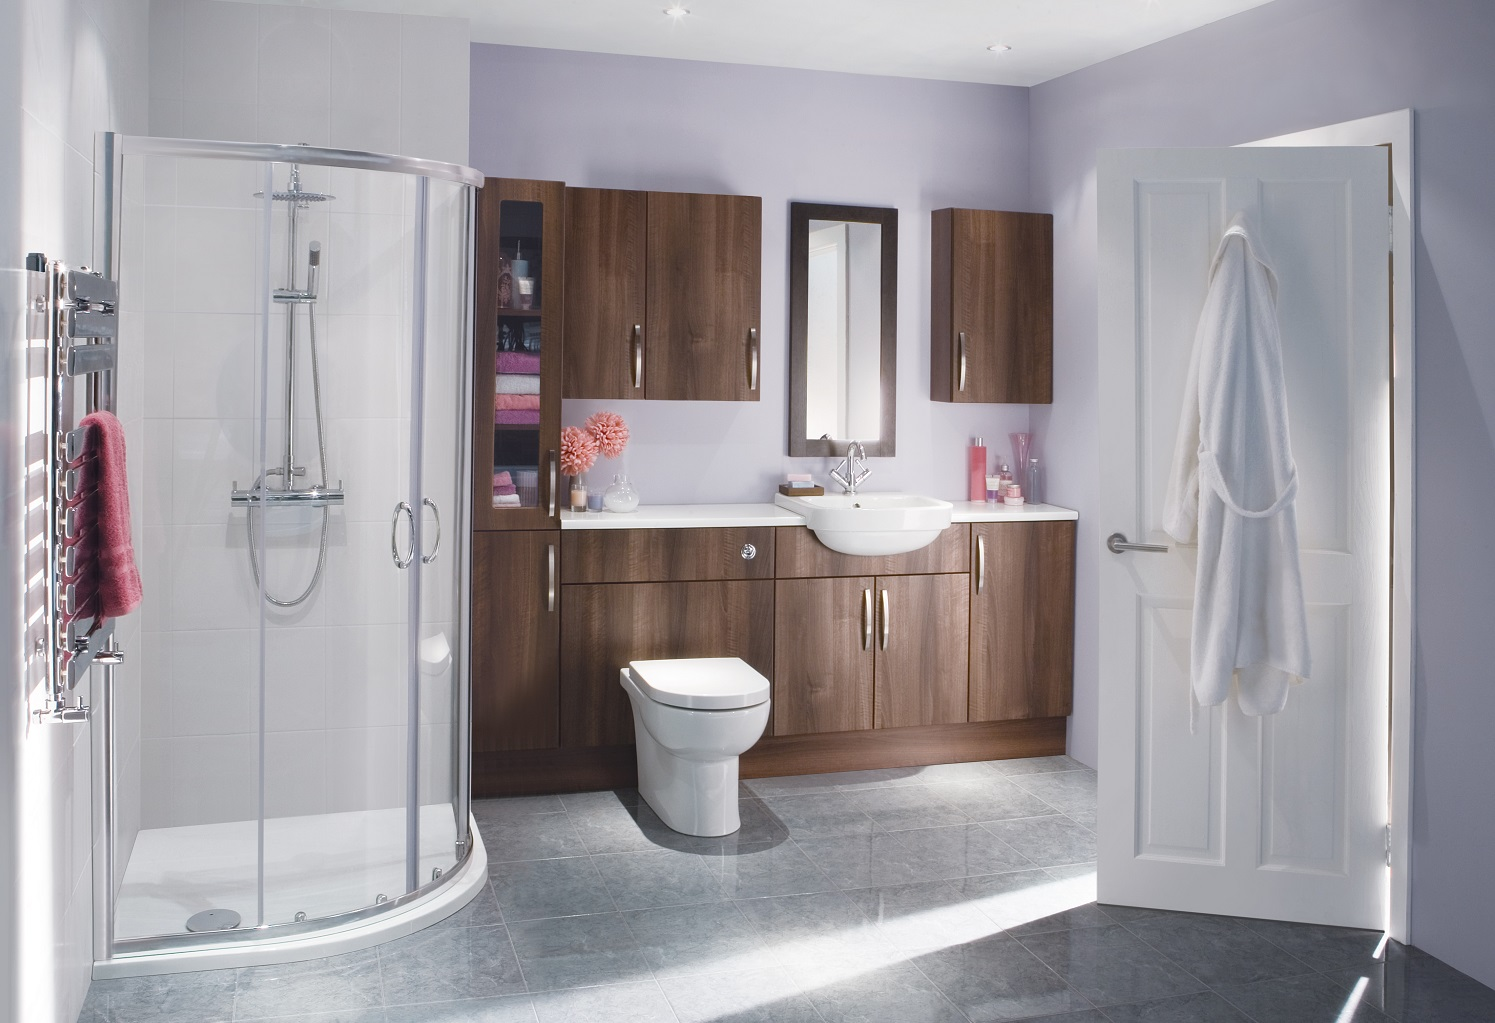 The shower enclosure buyer 39 s guide bigbathroomshop - All you need to know about steam showers ...